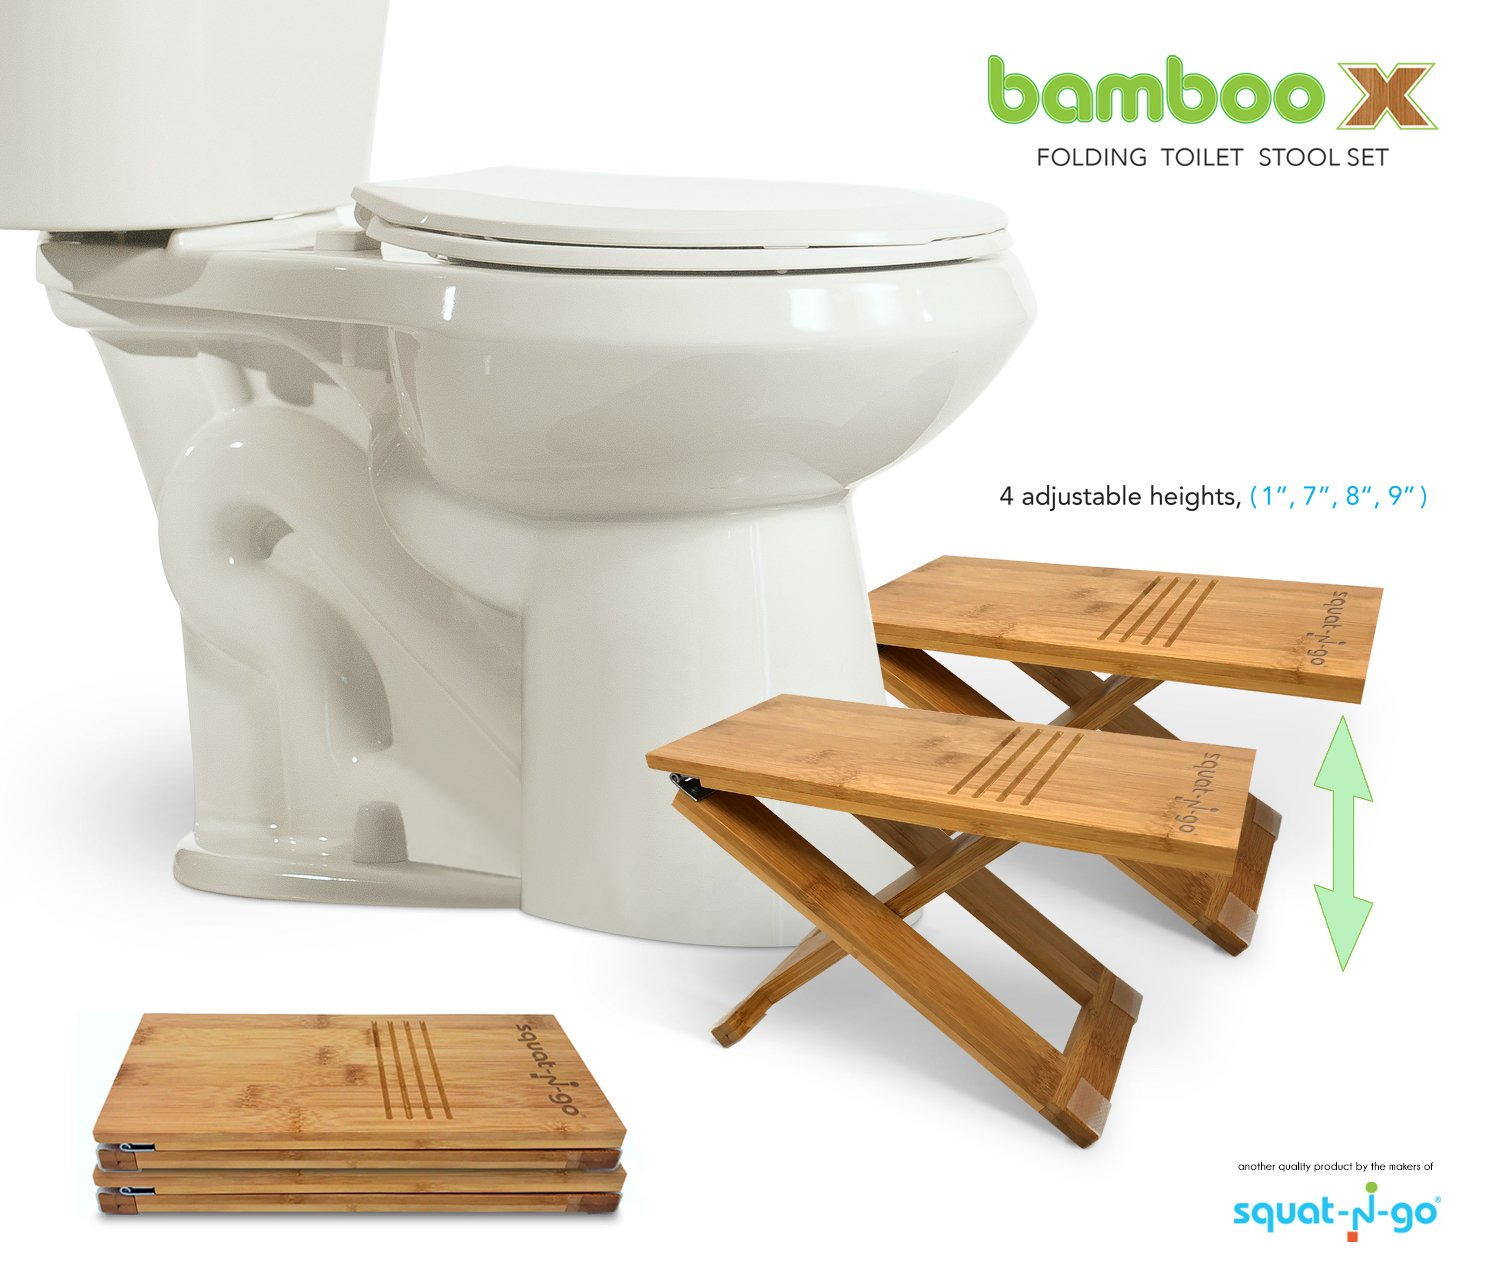 Squat N Go Bamboo X Toilet Stool | Fully Adjustable, Ultra Portable & Eco Friendly | Bonus Travel Bag Included by Squat N Go